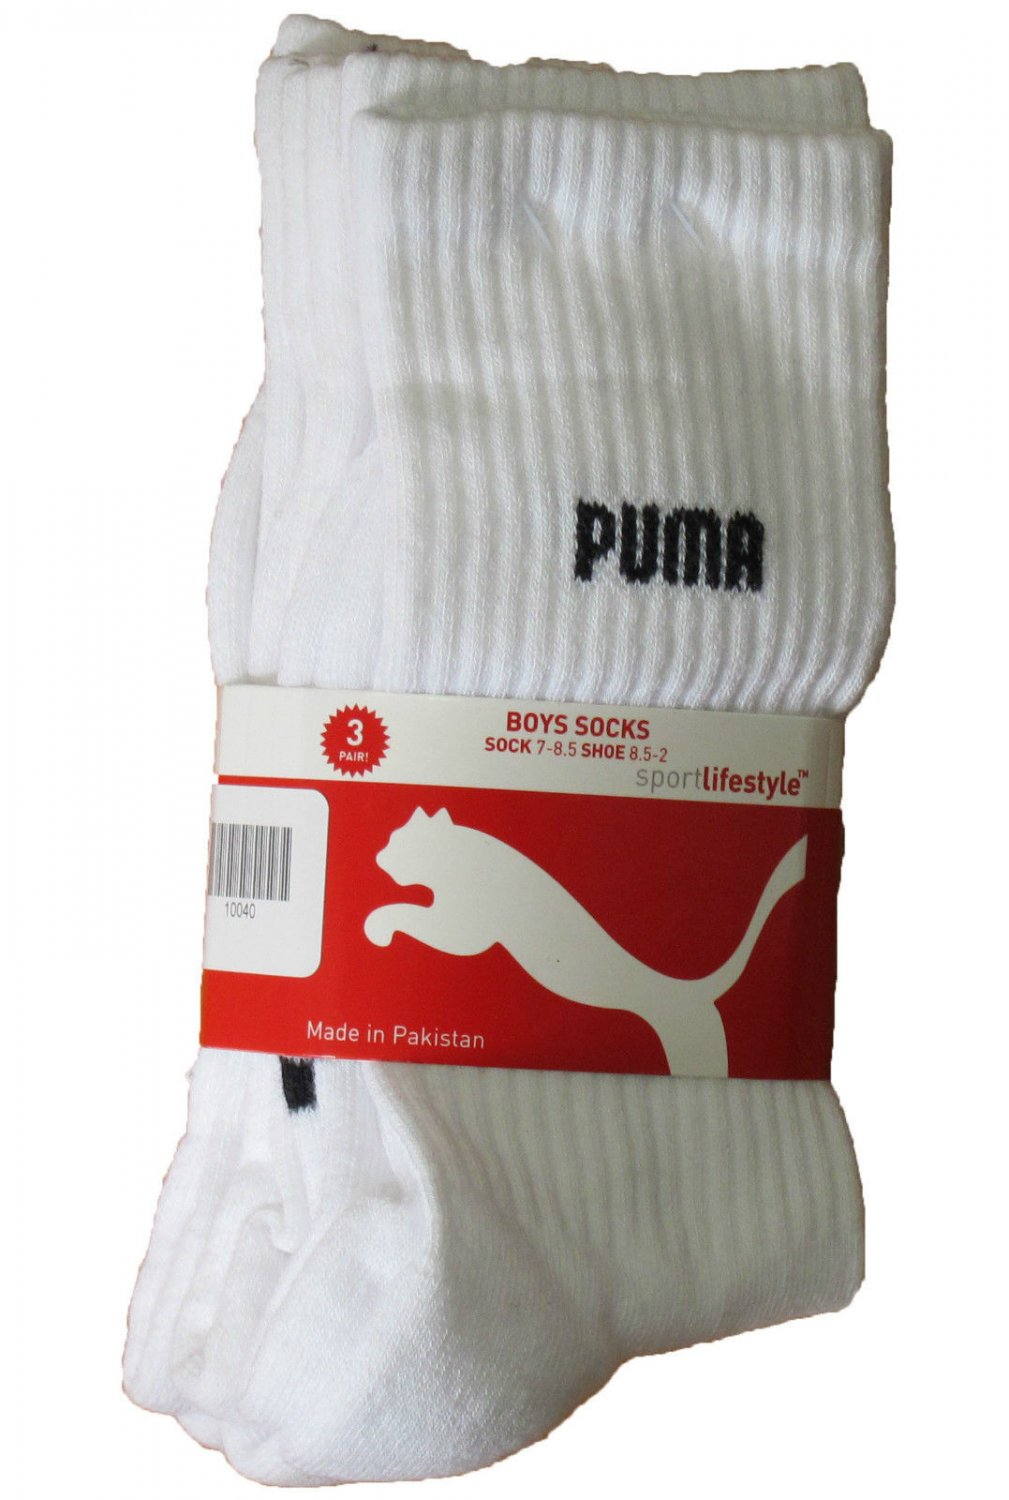 Puma Toddler Boys 3-Pack White Crew Socks Size 5-6.5 (fits boy's shoe size 5.5 to 11.5)